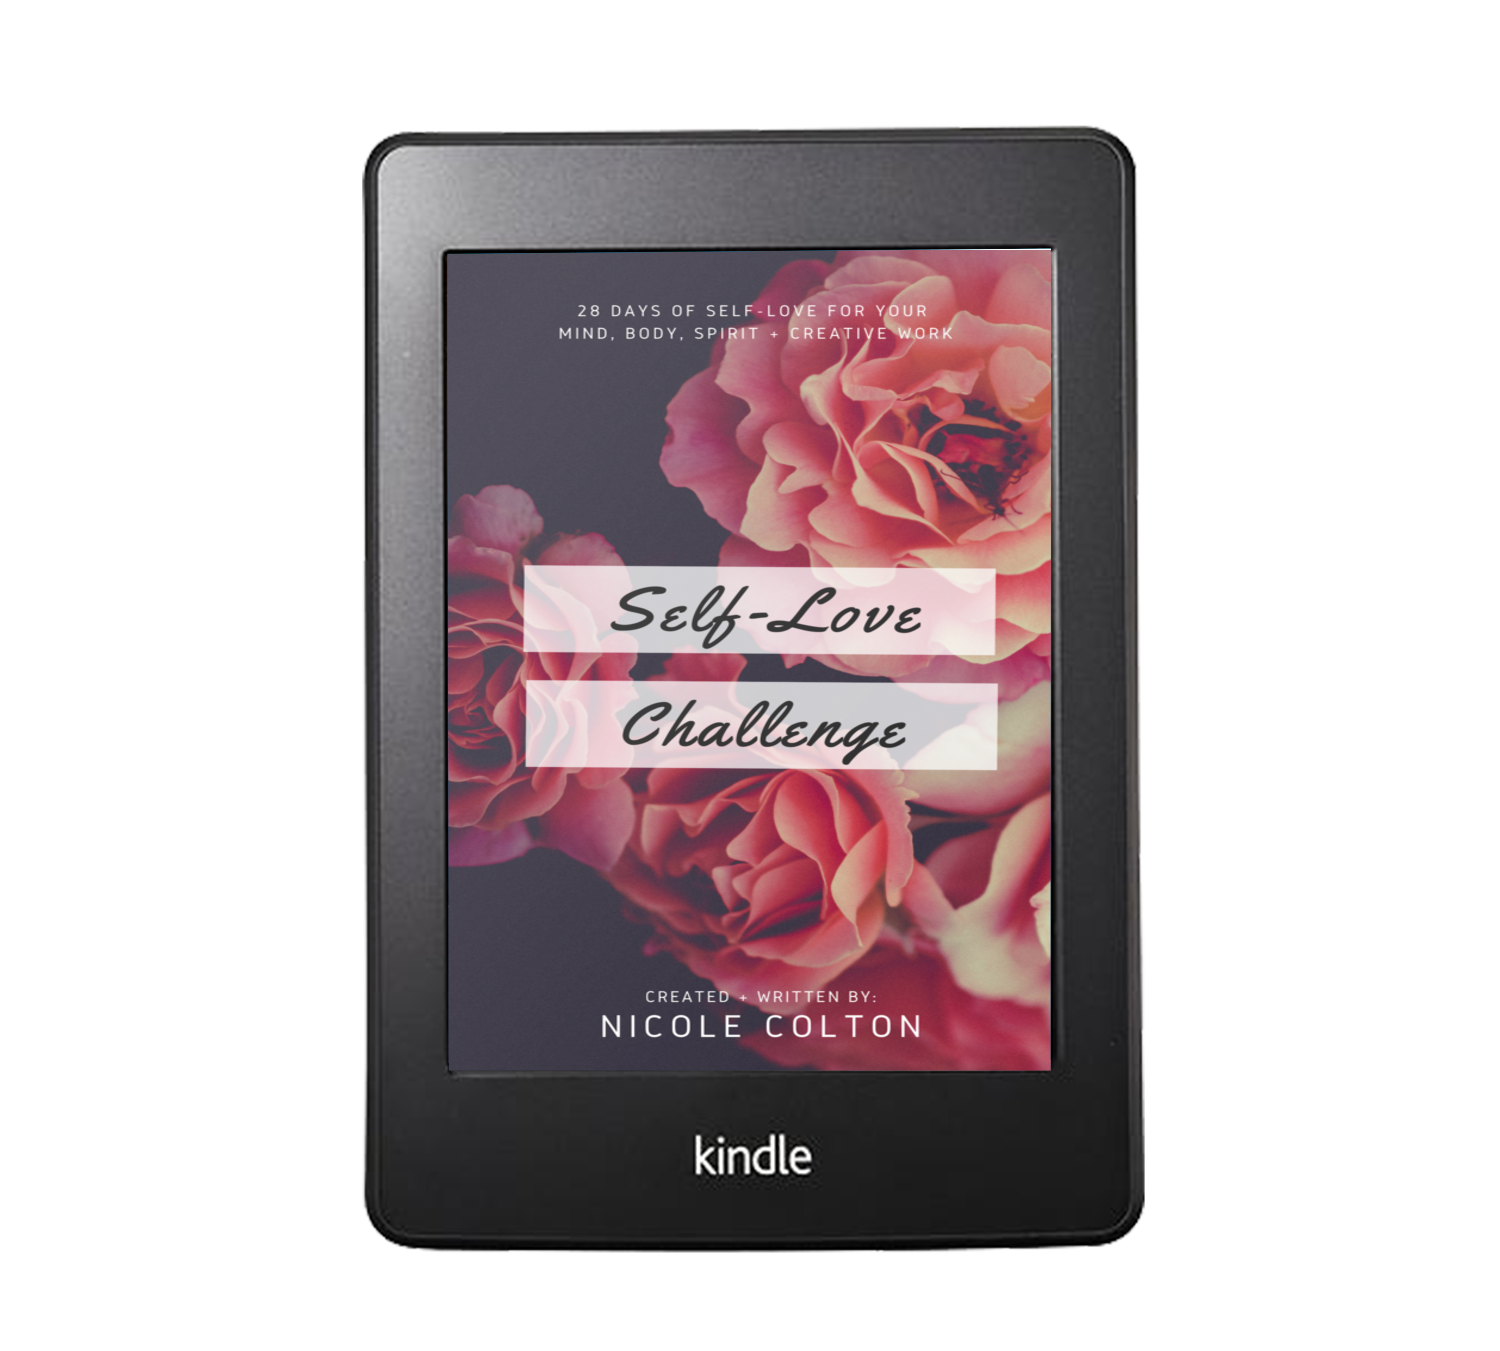 kindle ebook self love challenge